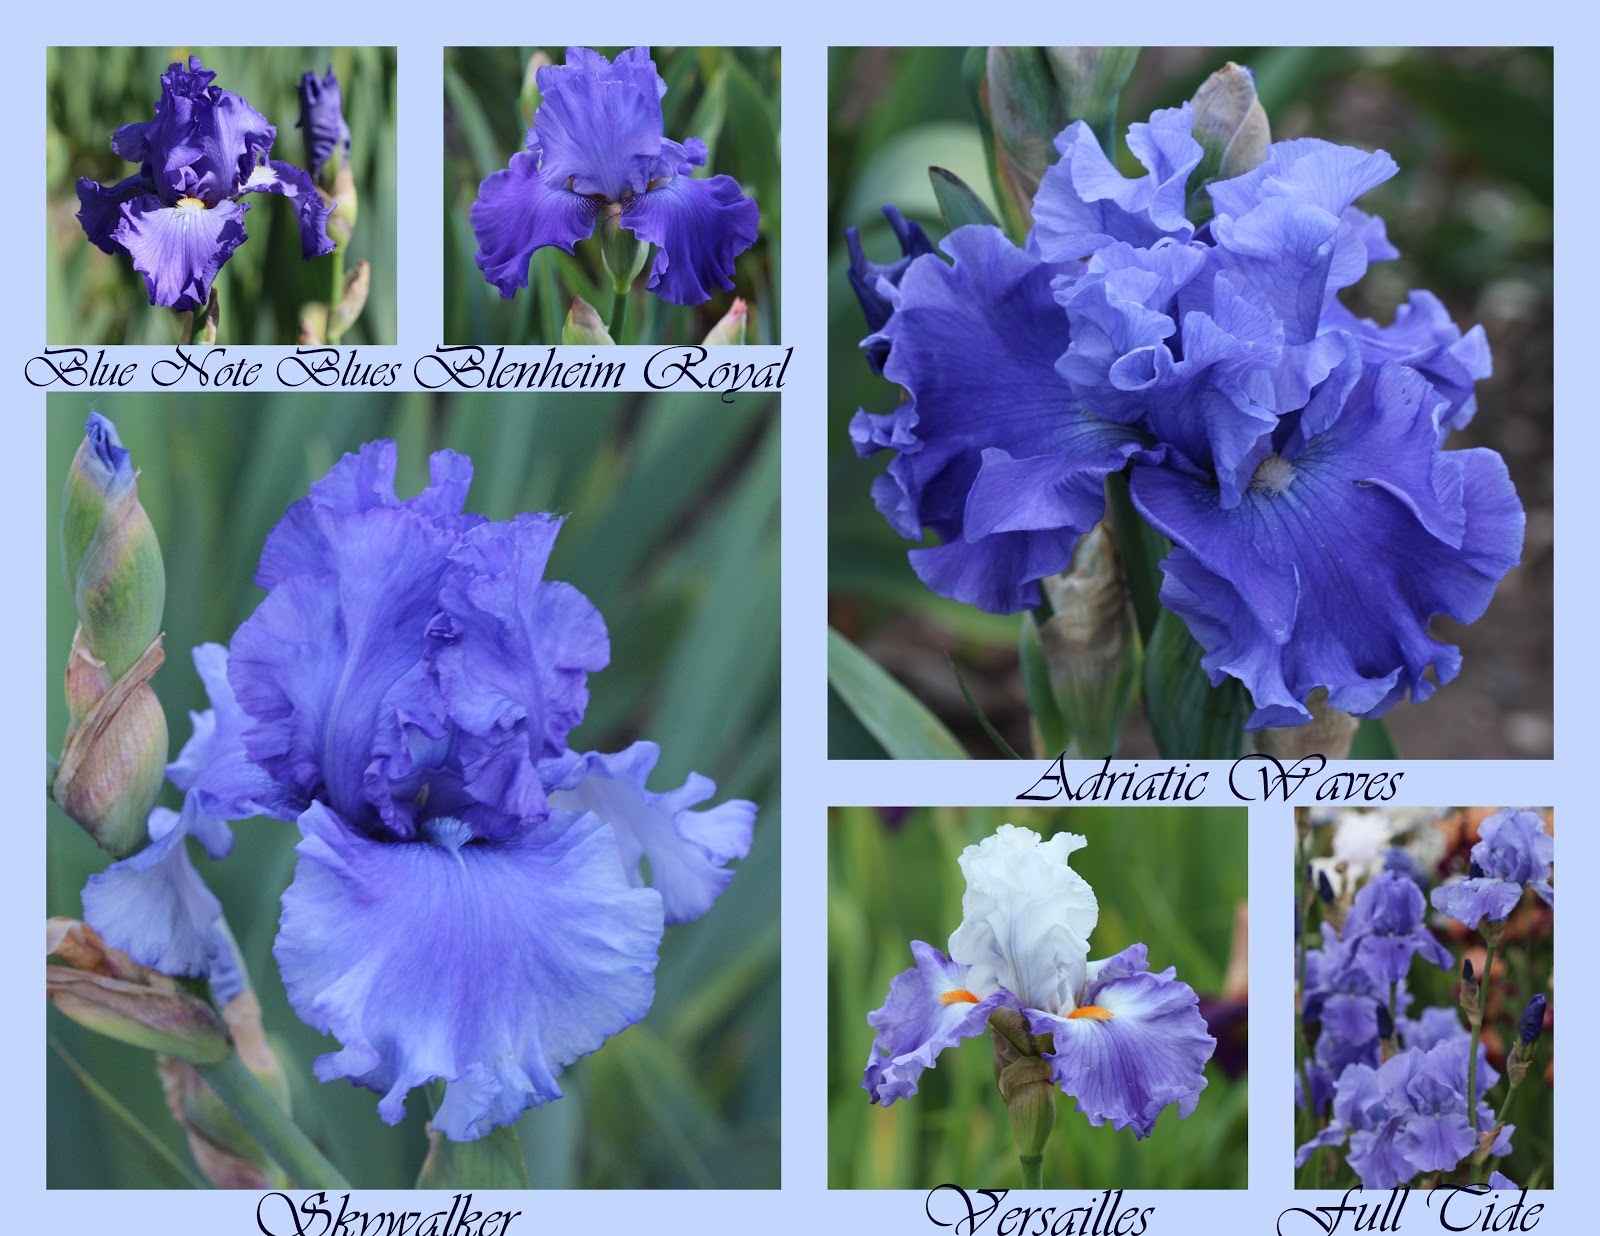 World of irises february 2017 pattern meaning the reverse pattern of a plicata with darker ground color and white edges veins and around beards adriatic waves keith keppel 2008 izmirmasajfo